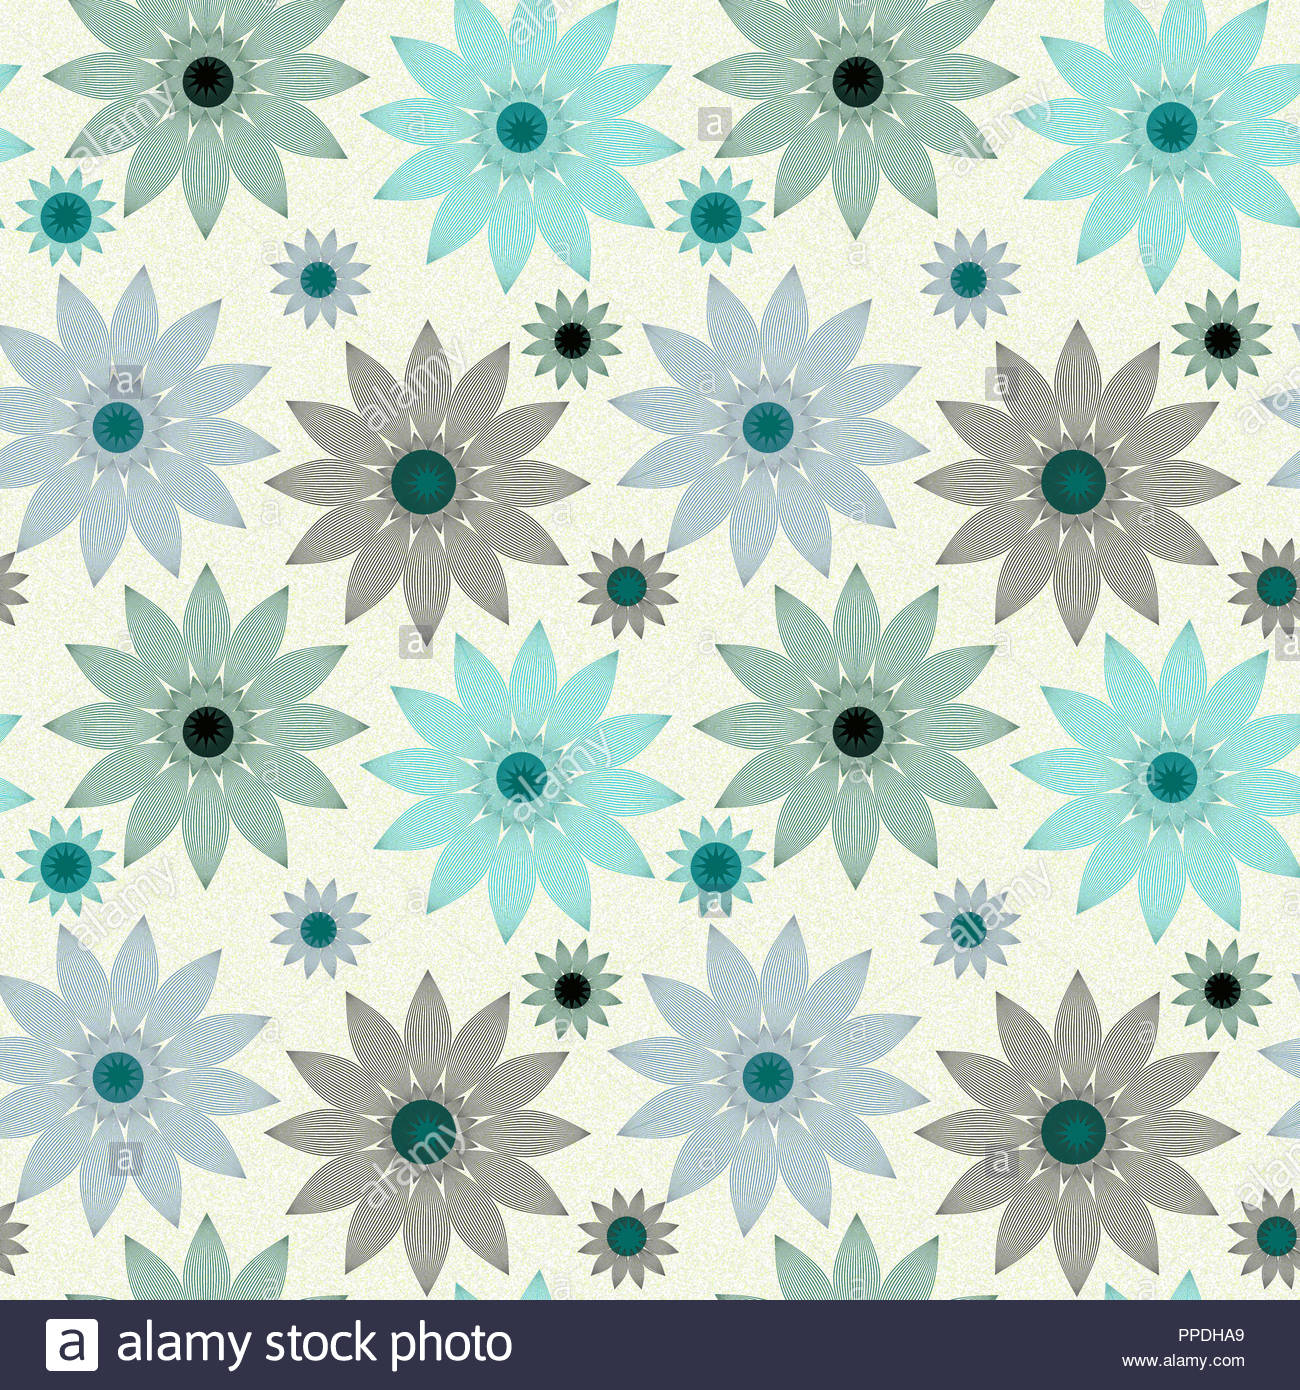 Vintage Style Floral Wallpaper Tile In Blue Black Shades Stock